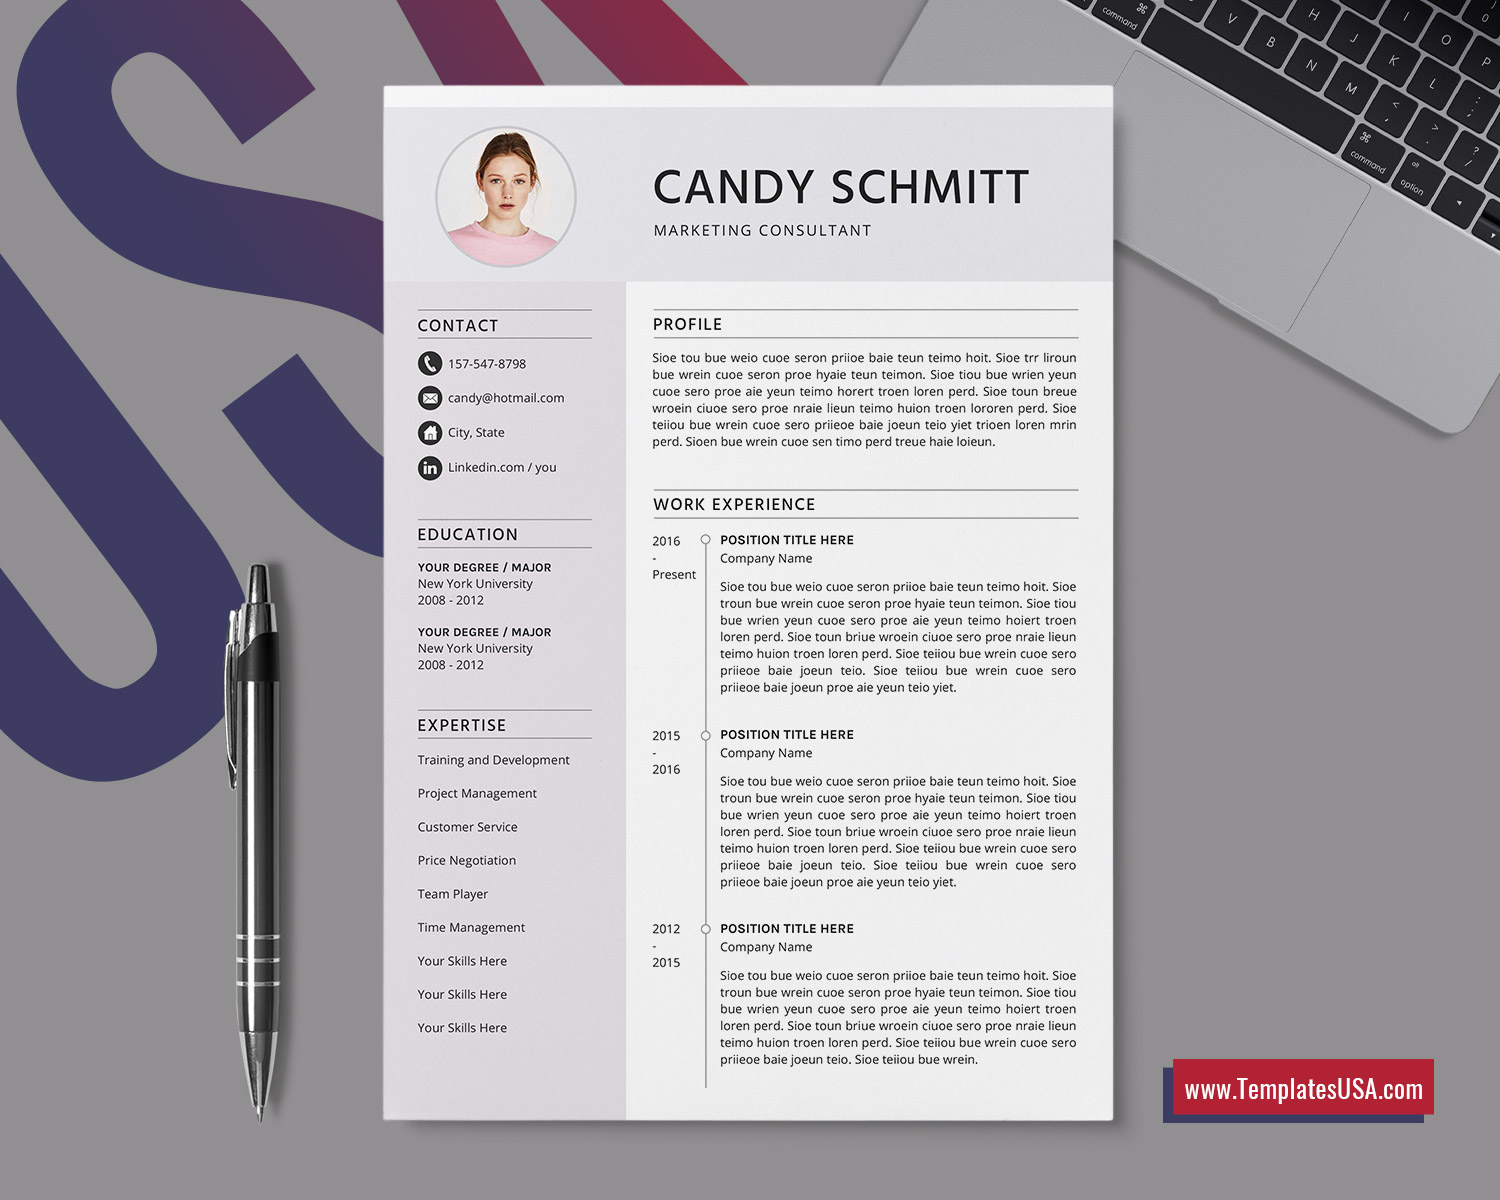 Modern Resume Template 2016 from www.templatesusa.com